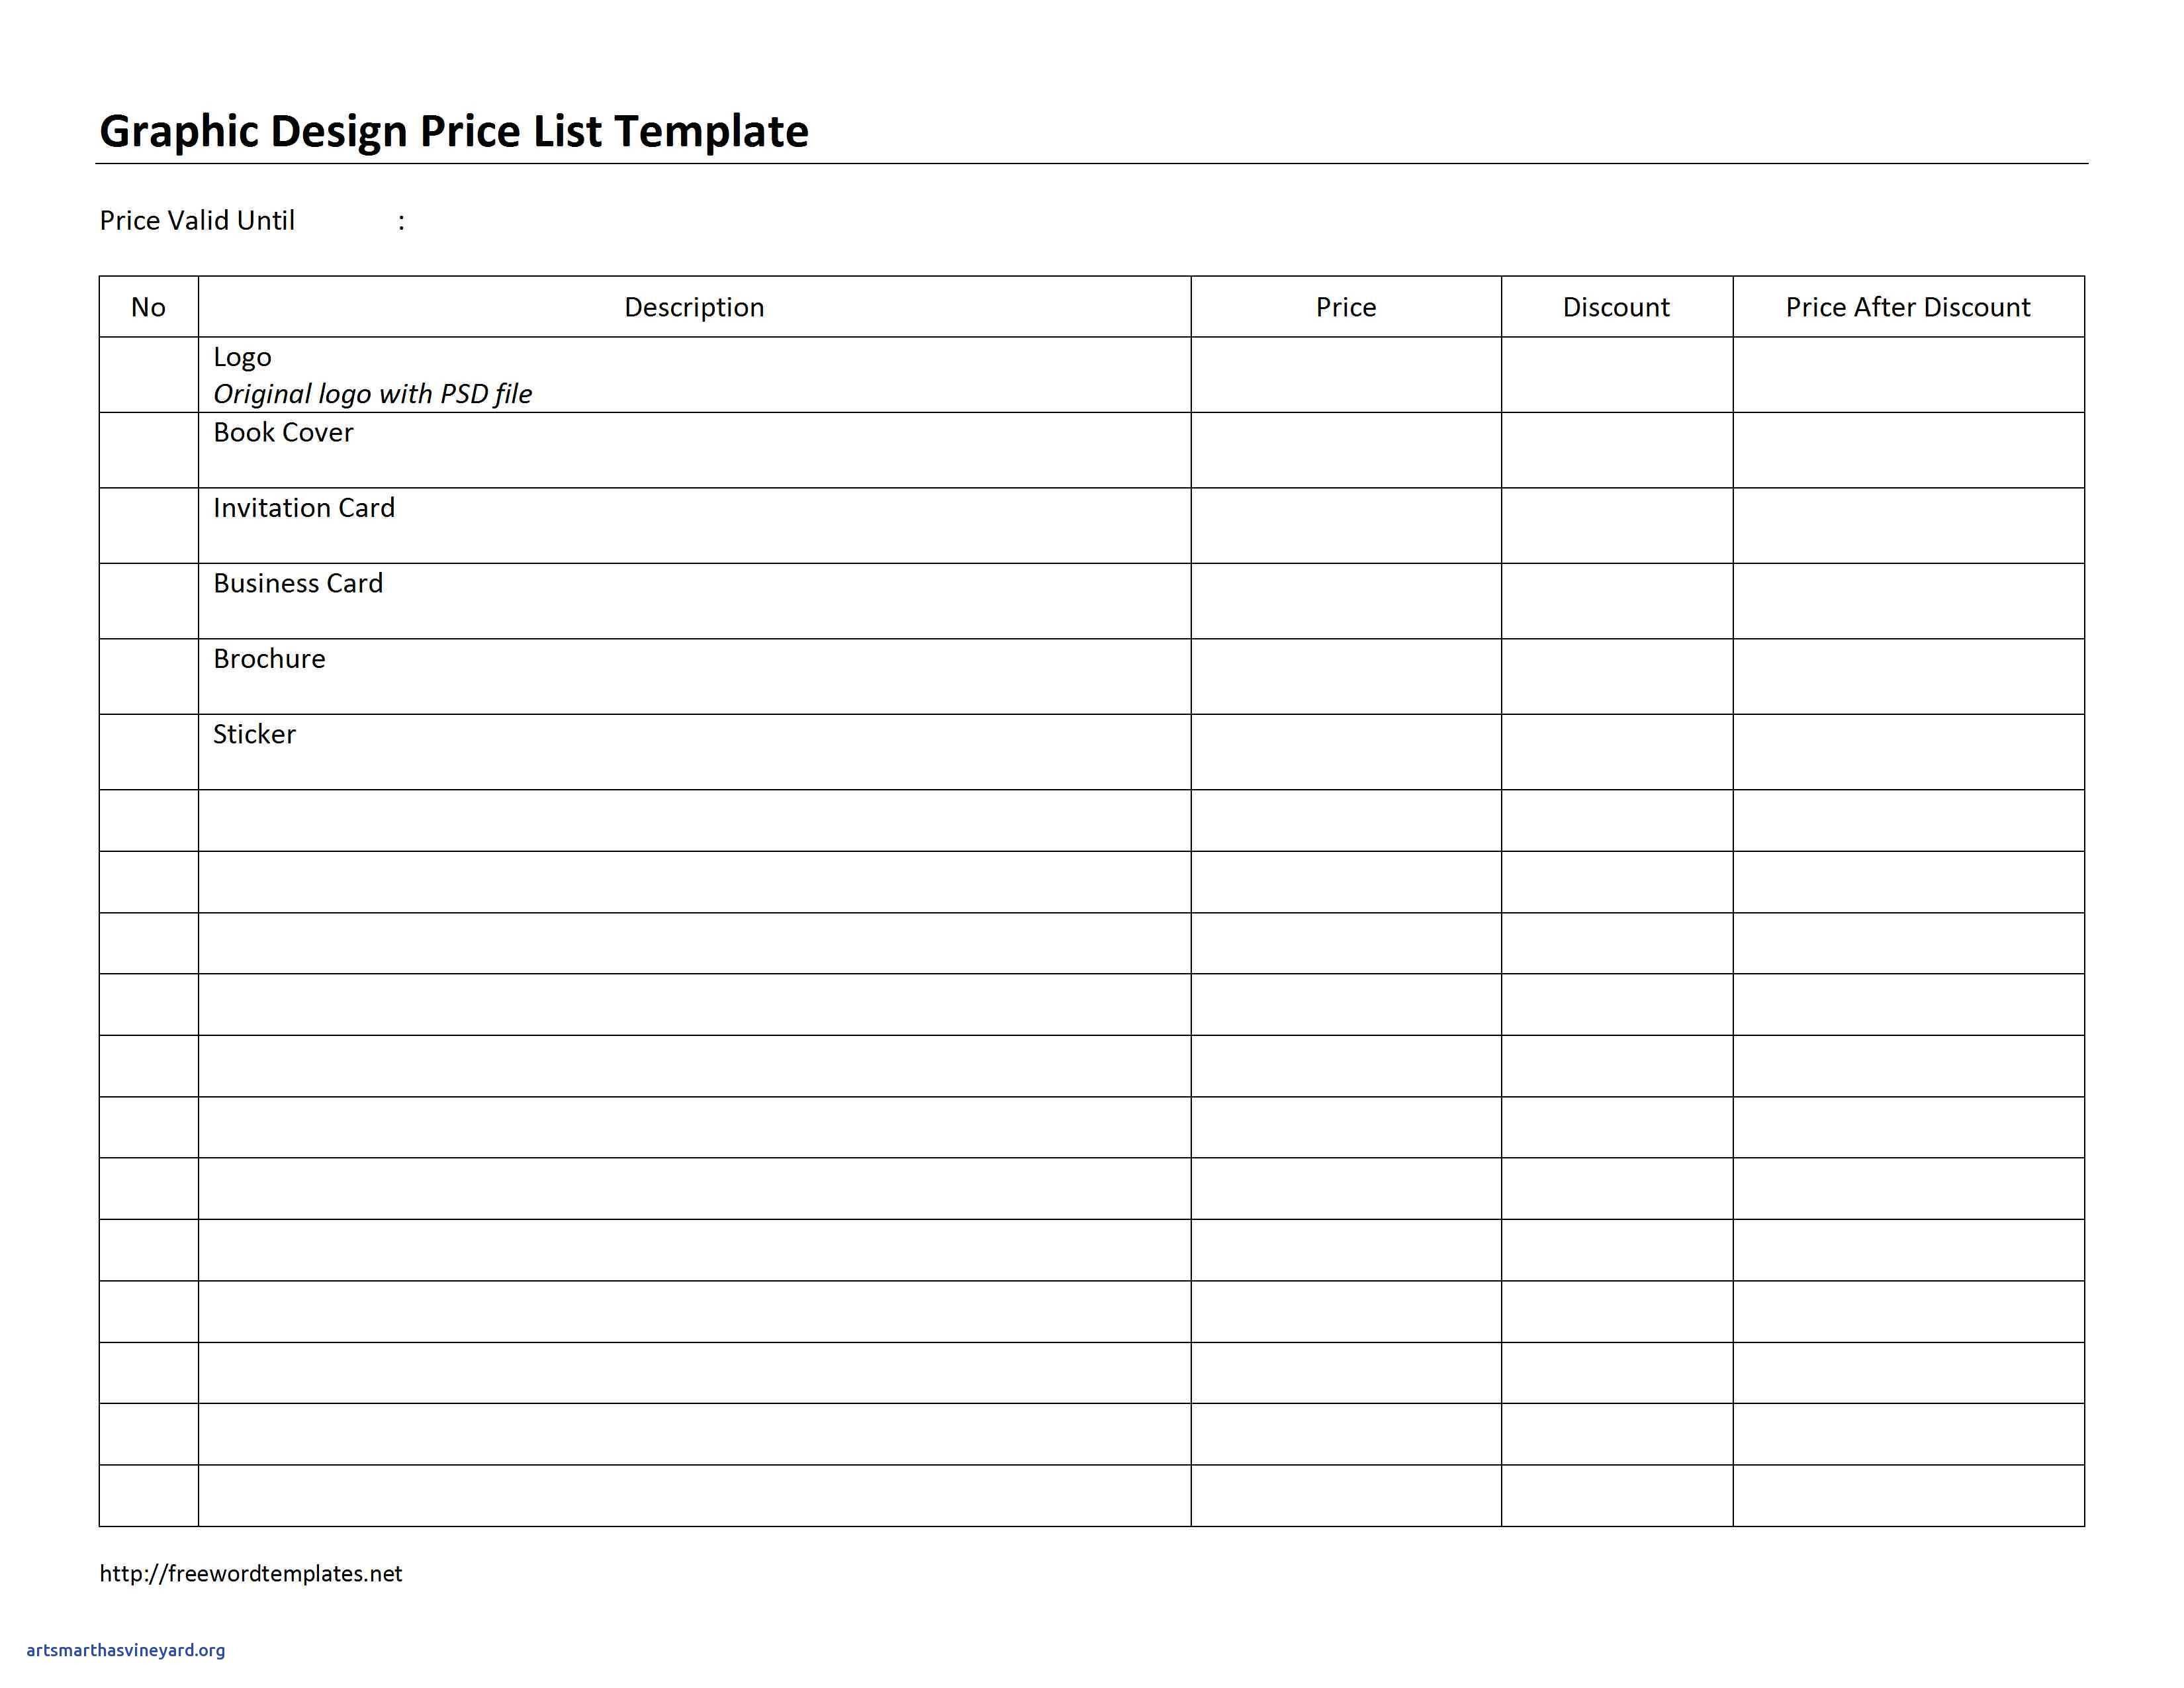 Construction Cost Spreadsheet Template Regarding Construction Cost Spreadsheet Template And Construction Job Costing